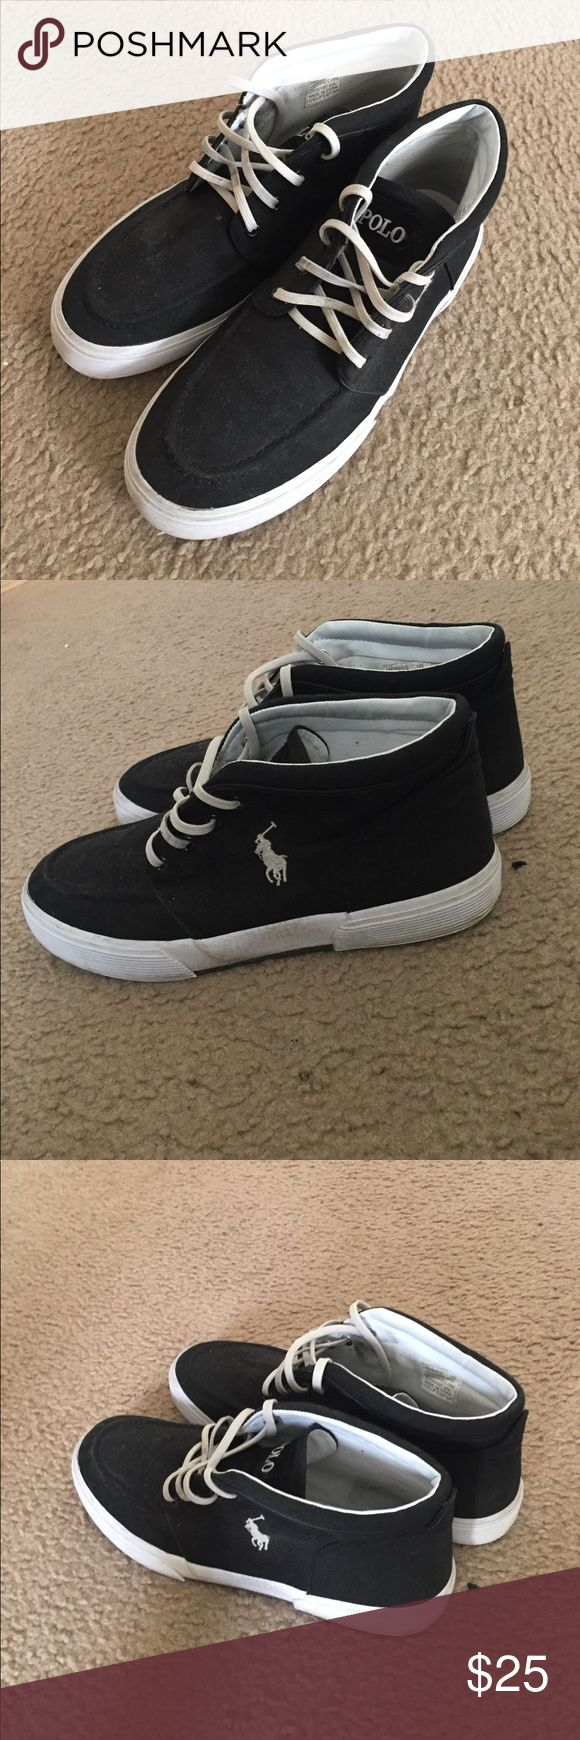 Black and White High-Top Polo Shoes Worn a couple times, they go well with various outfits, and you won't find this price anywhere else! Polo by Ralph Lauren Shoes Sneakers